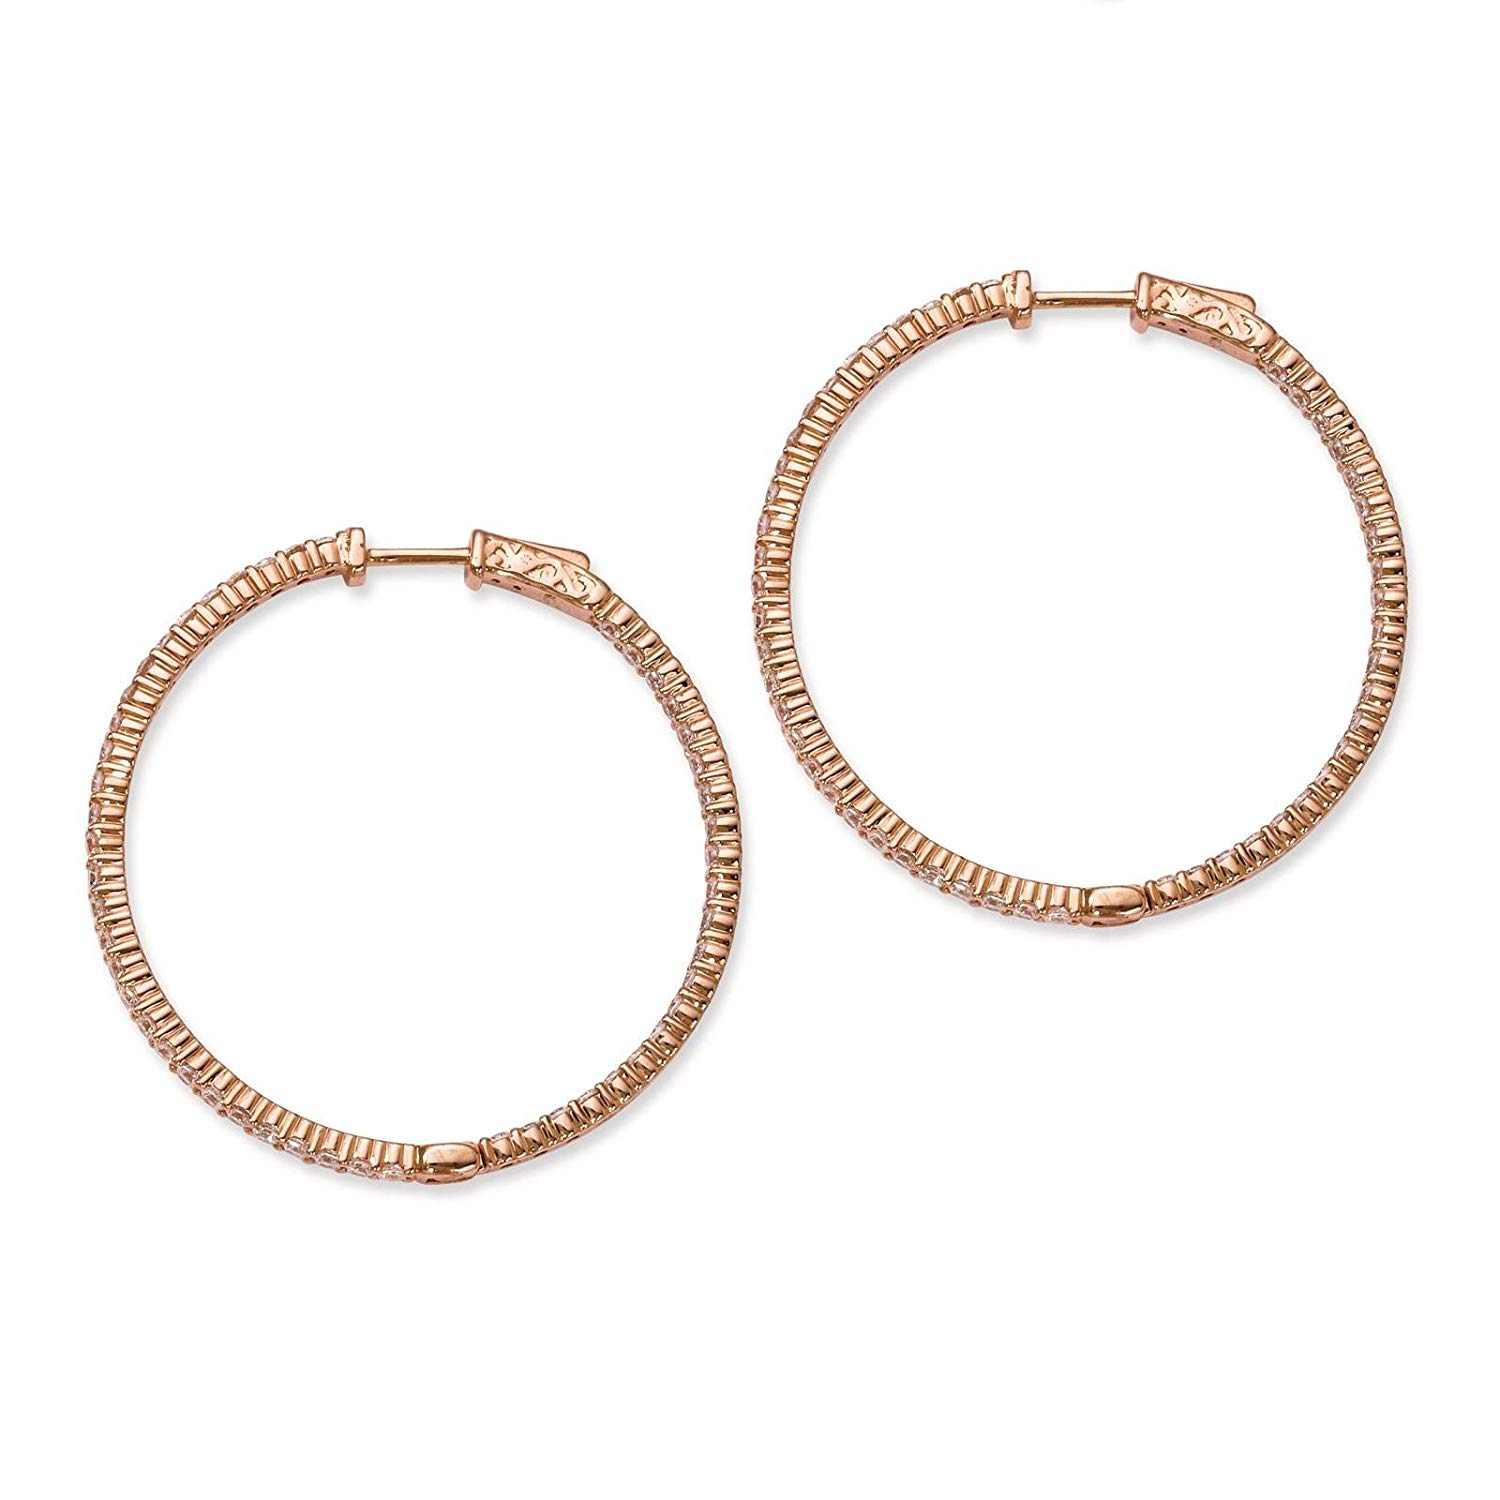 .925 Sterling Silver Rose-tone CZ In & Out Round Hoop Earrings 2mm x 41mm by Sterling Shimmer